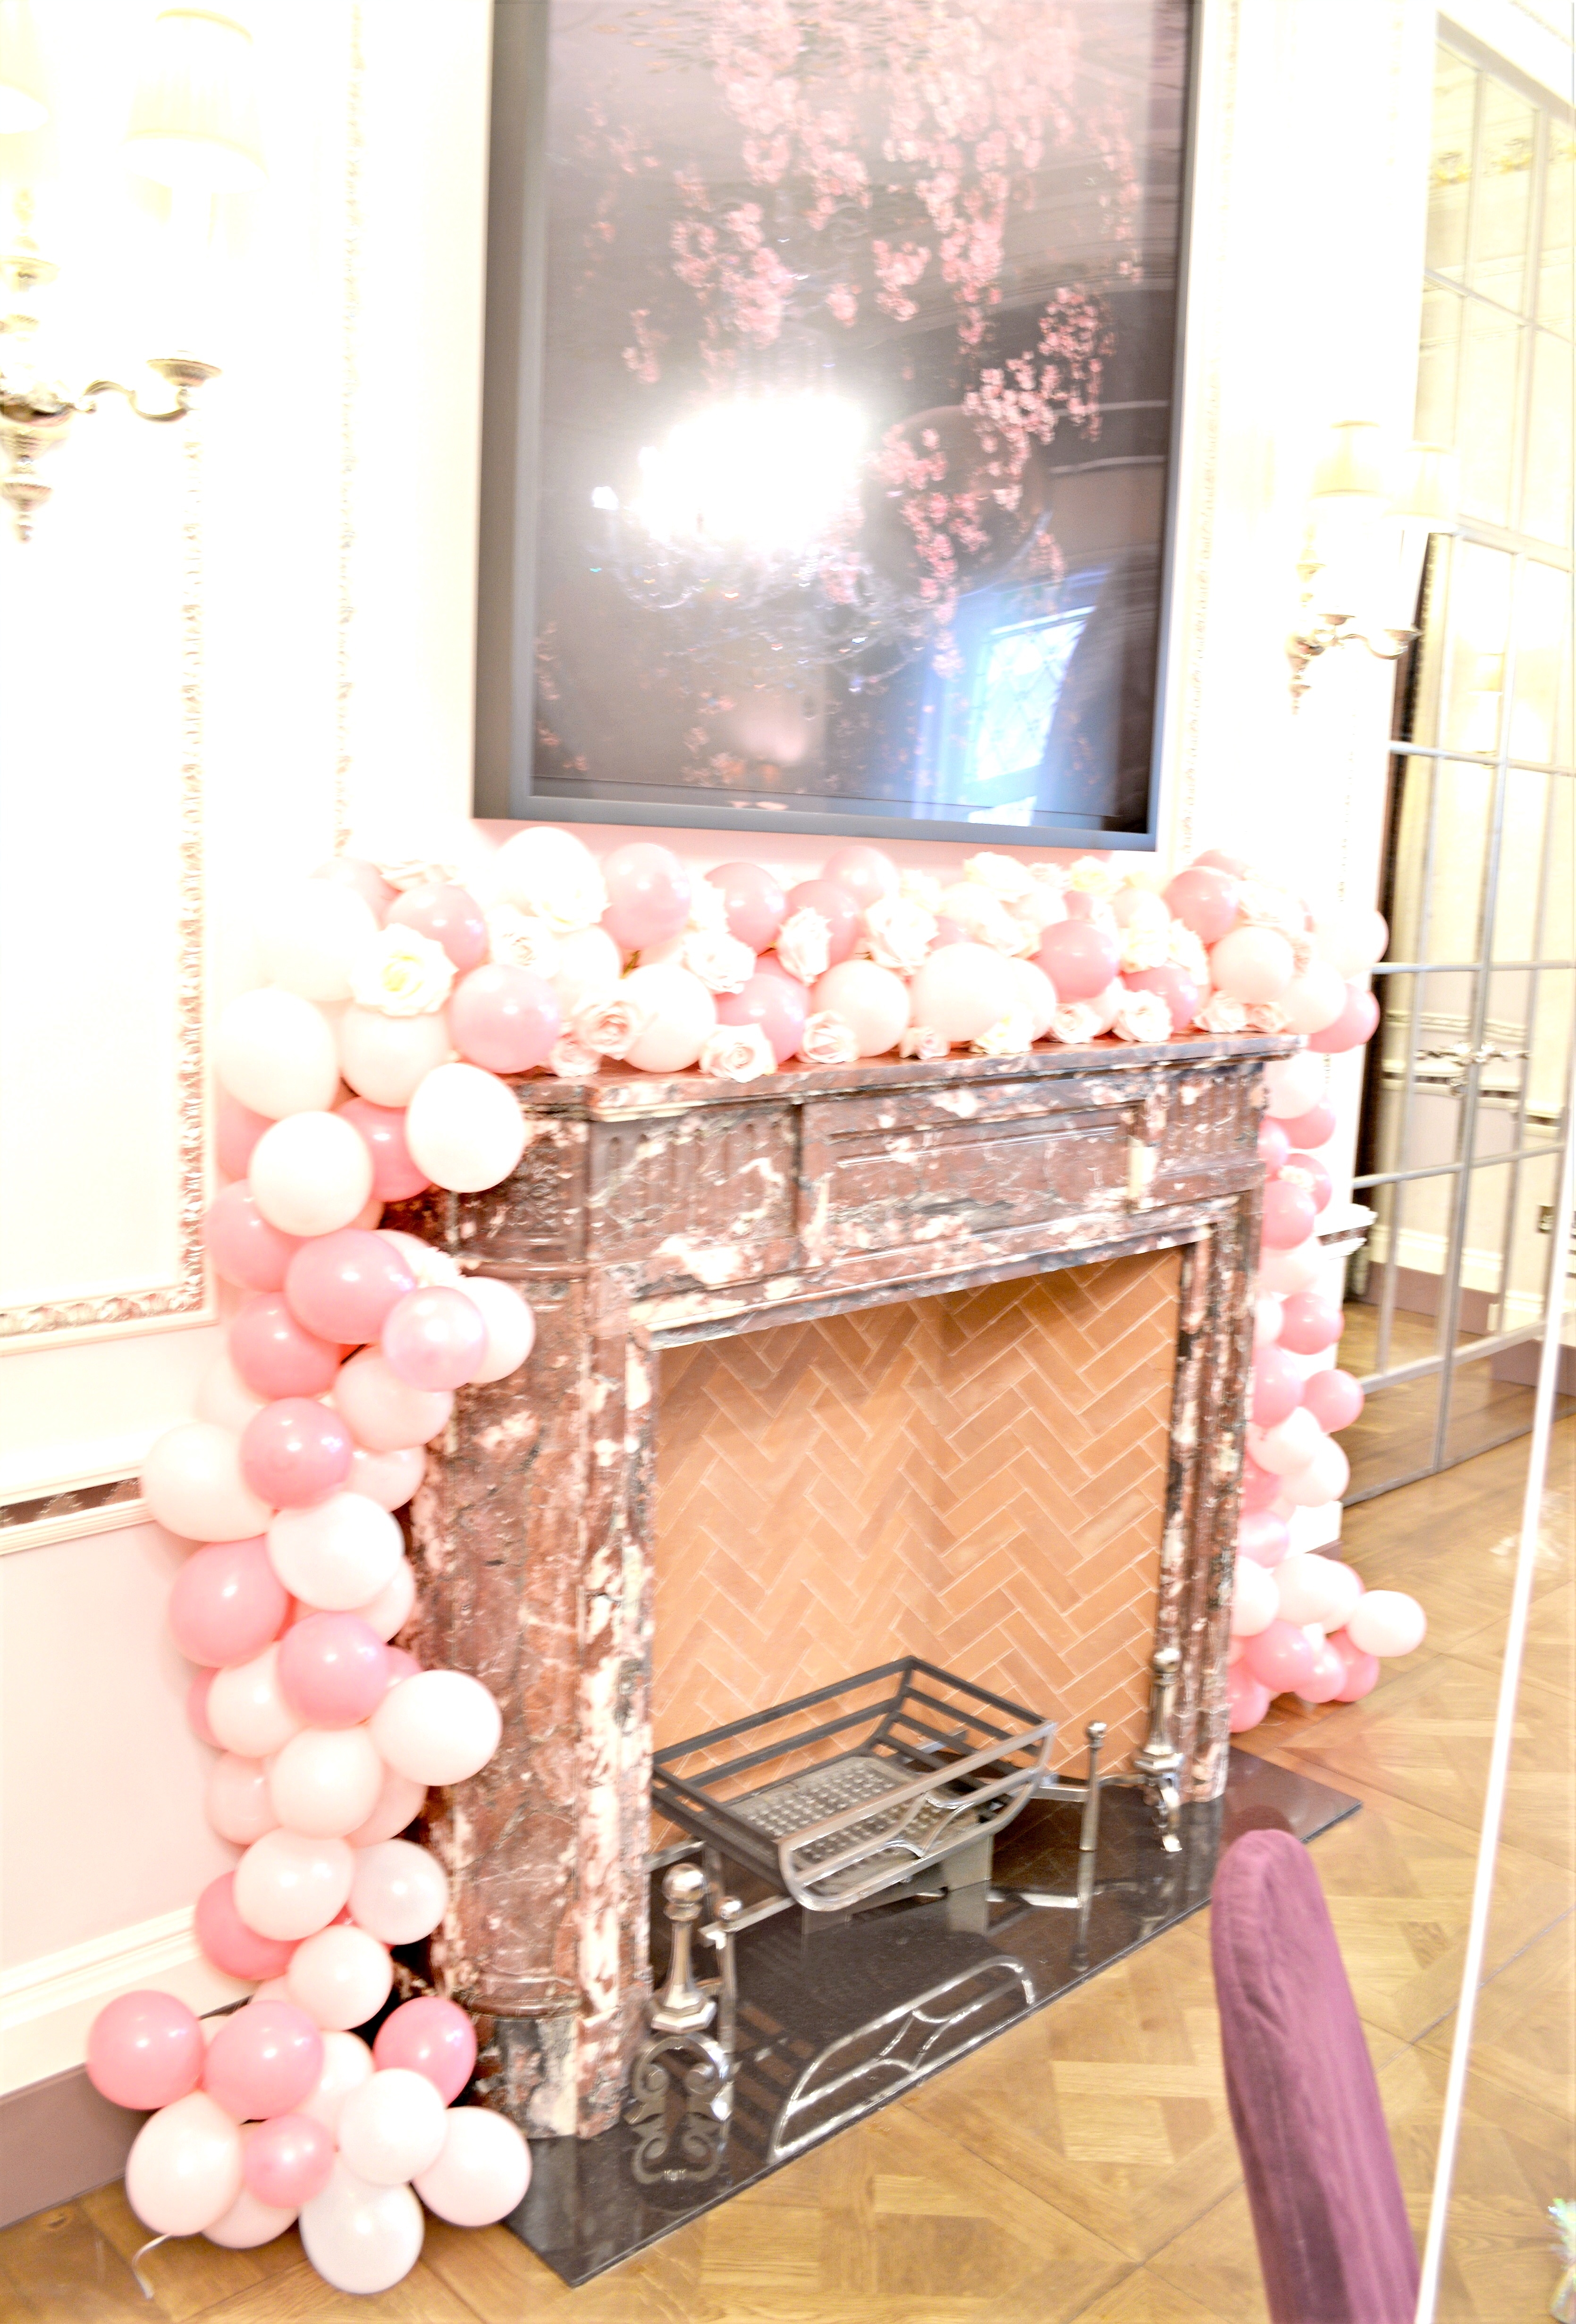 Pink, White and Rose Gold Themed Birthday Wedding Cake, Flower Runner Arrangements and Balloon Garland Fireplace at The Connaught London Cherie Kelly